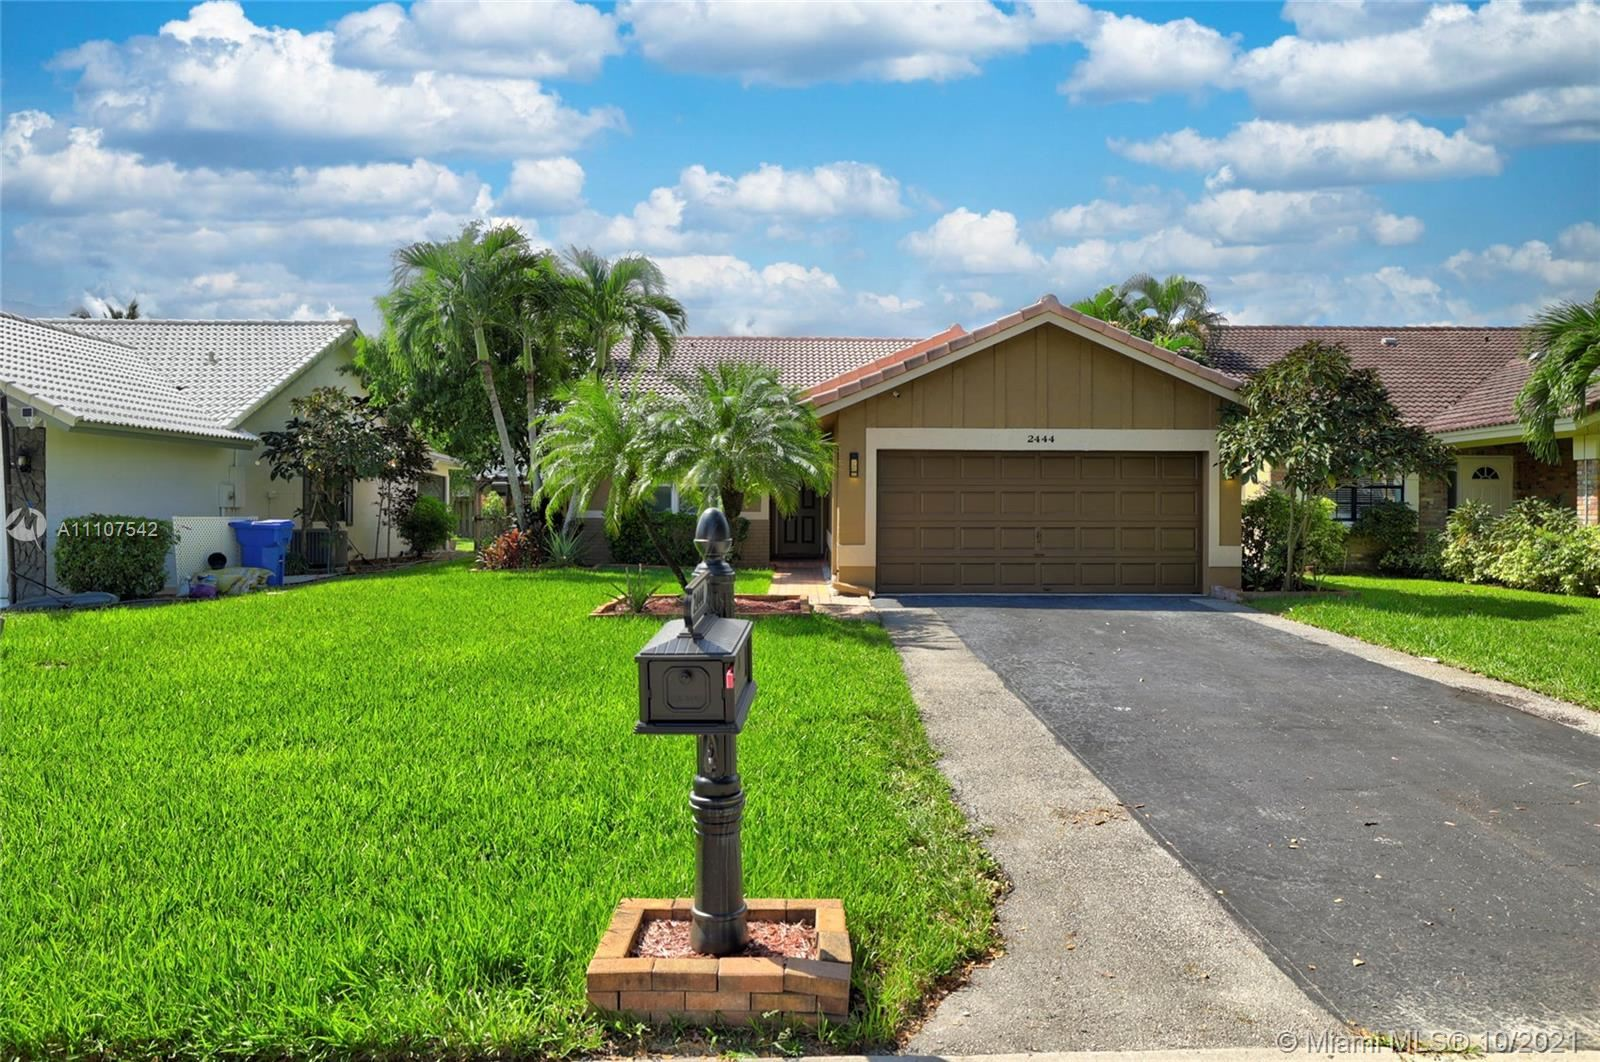 2444 NW 94th Ave, Coral Springs, FL 33065 - #: A11107542